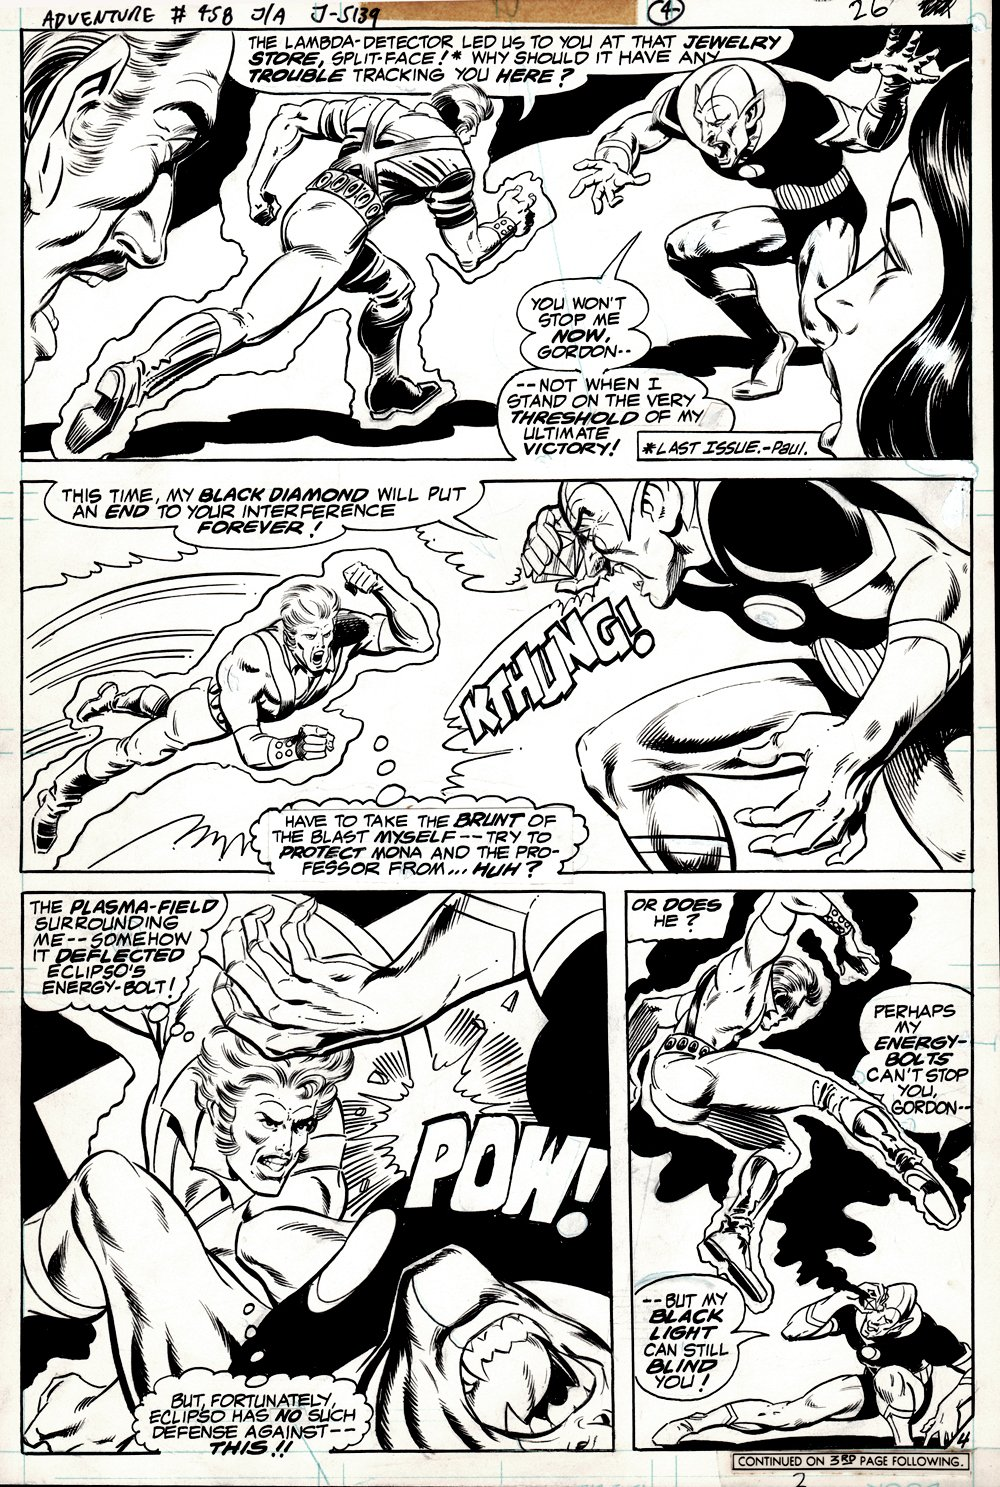 Adventure Comics #458 p 4 (ECIPSO BATTLE PAGE INKED BY BOB LAYTON!) 1978